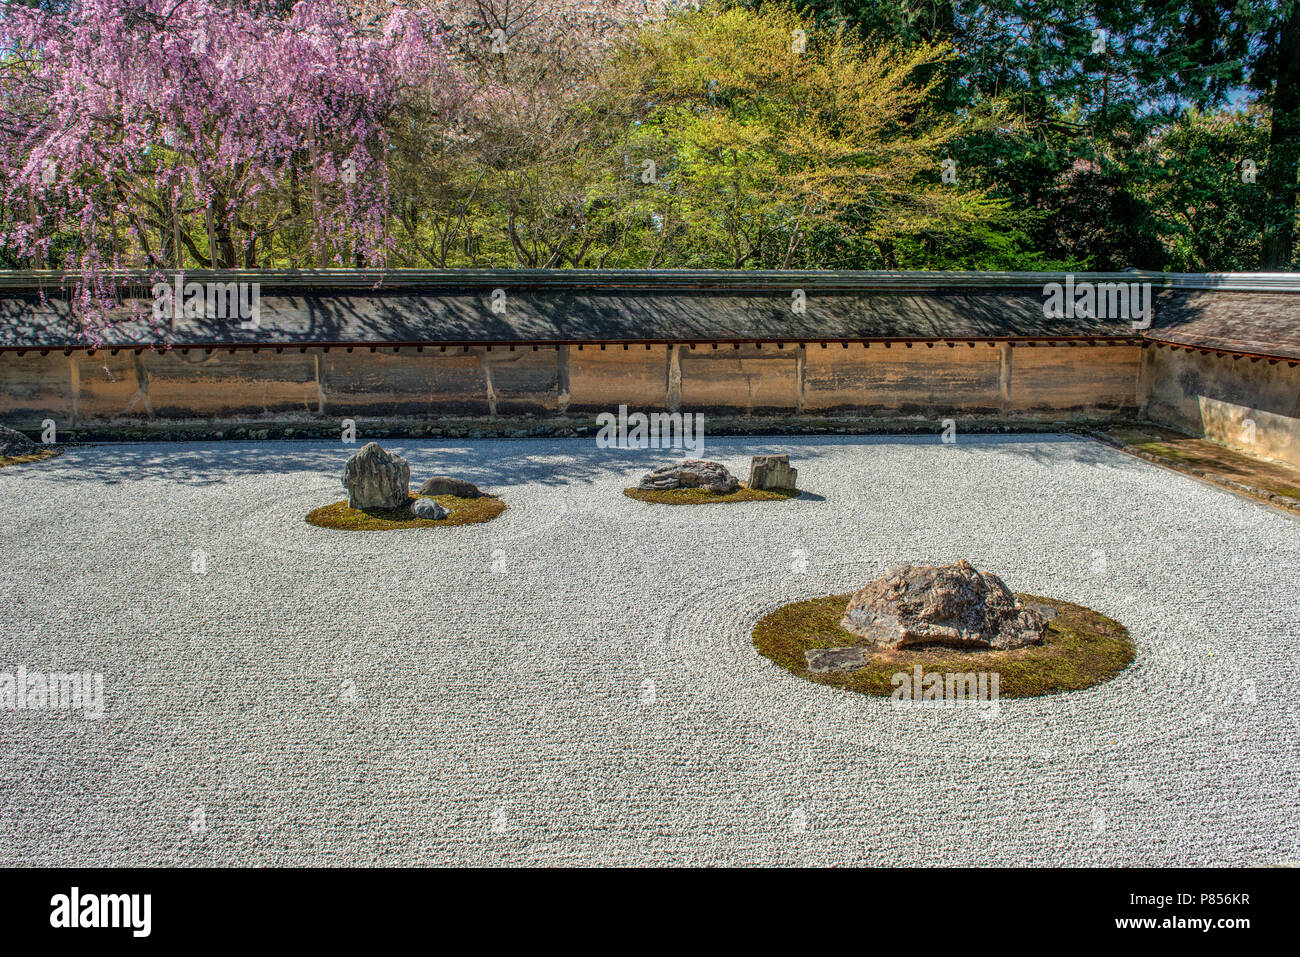 Japanese tourists enjoy tranquility at Ryoanji Temple in Kyoto, Japan. This Zen Buddhist temple is famous for its rock garden. - Stock Image